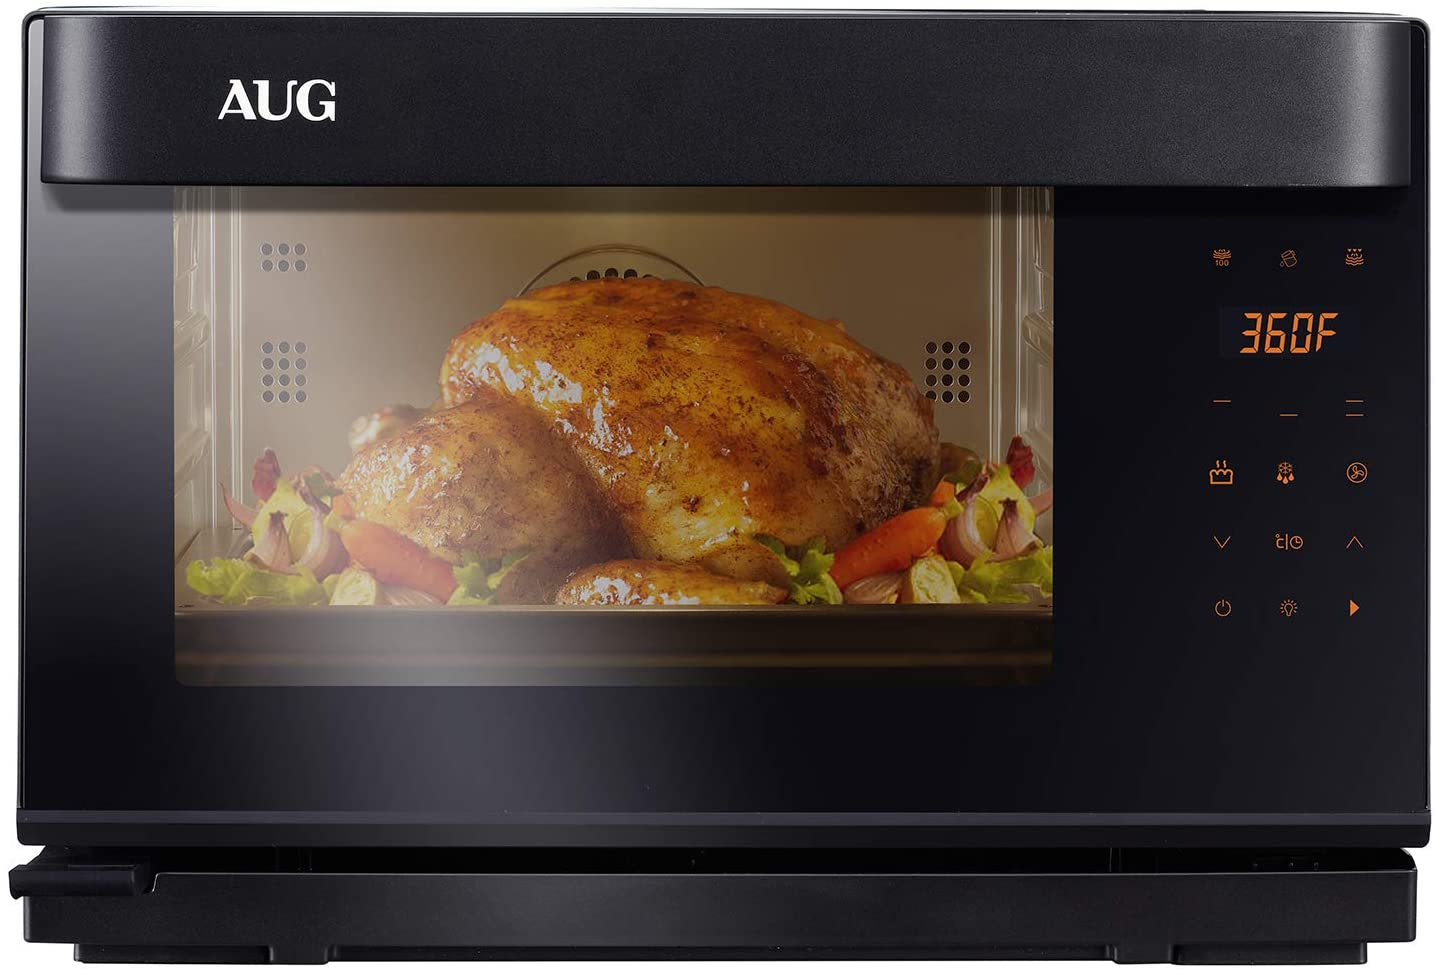 Aug Countertop Steam Convection Oven Grill